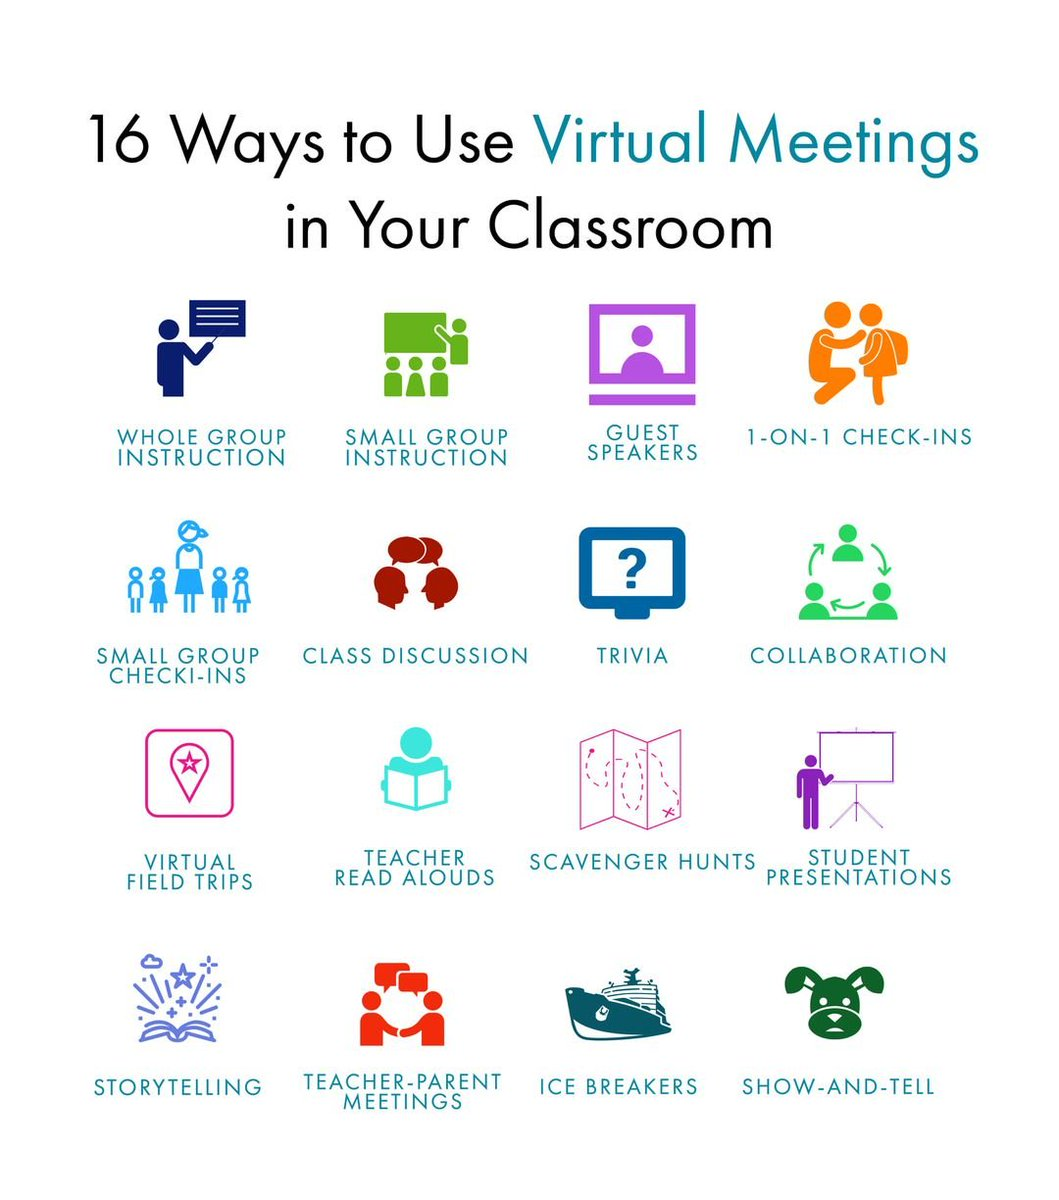 Here are 16 ways (and explanations) to use virtual meetings with your students! mailchi.mp/trevormuir/16-…